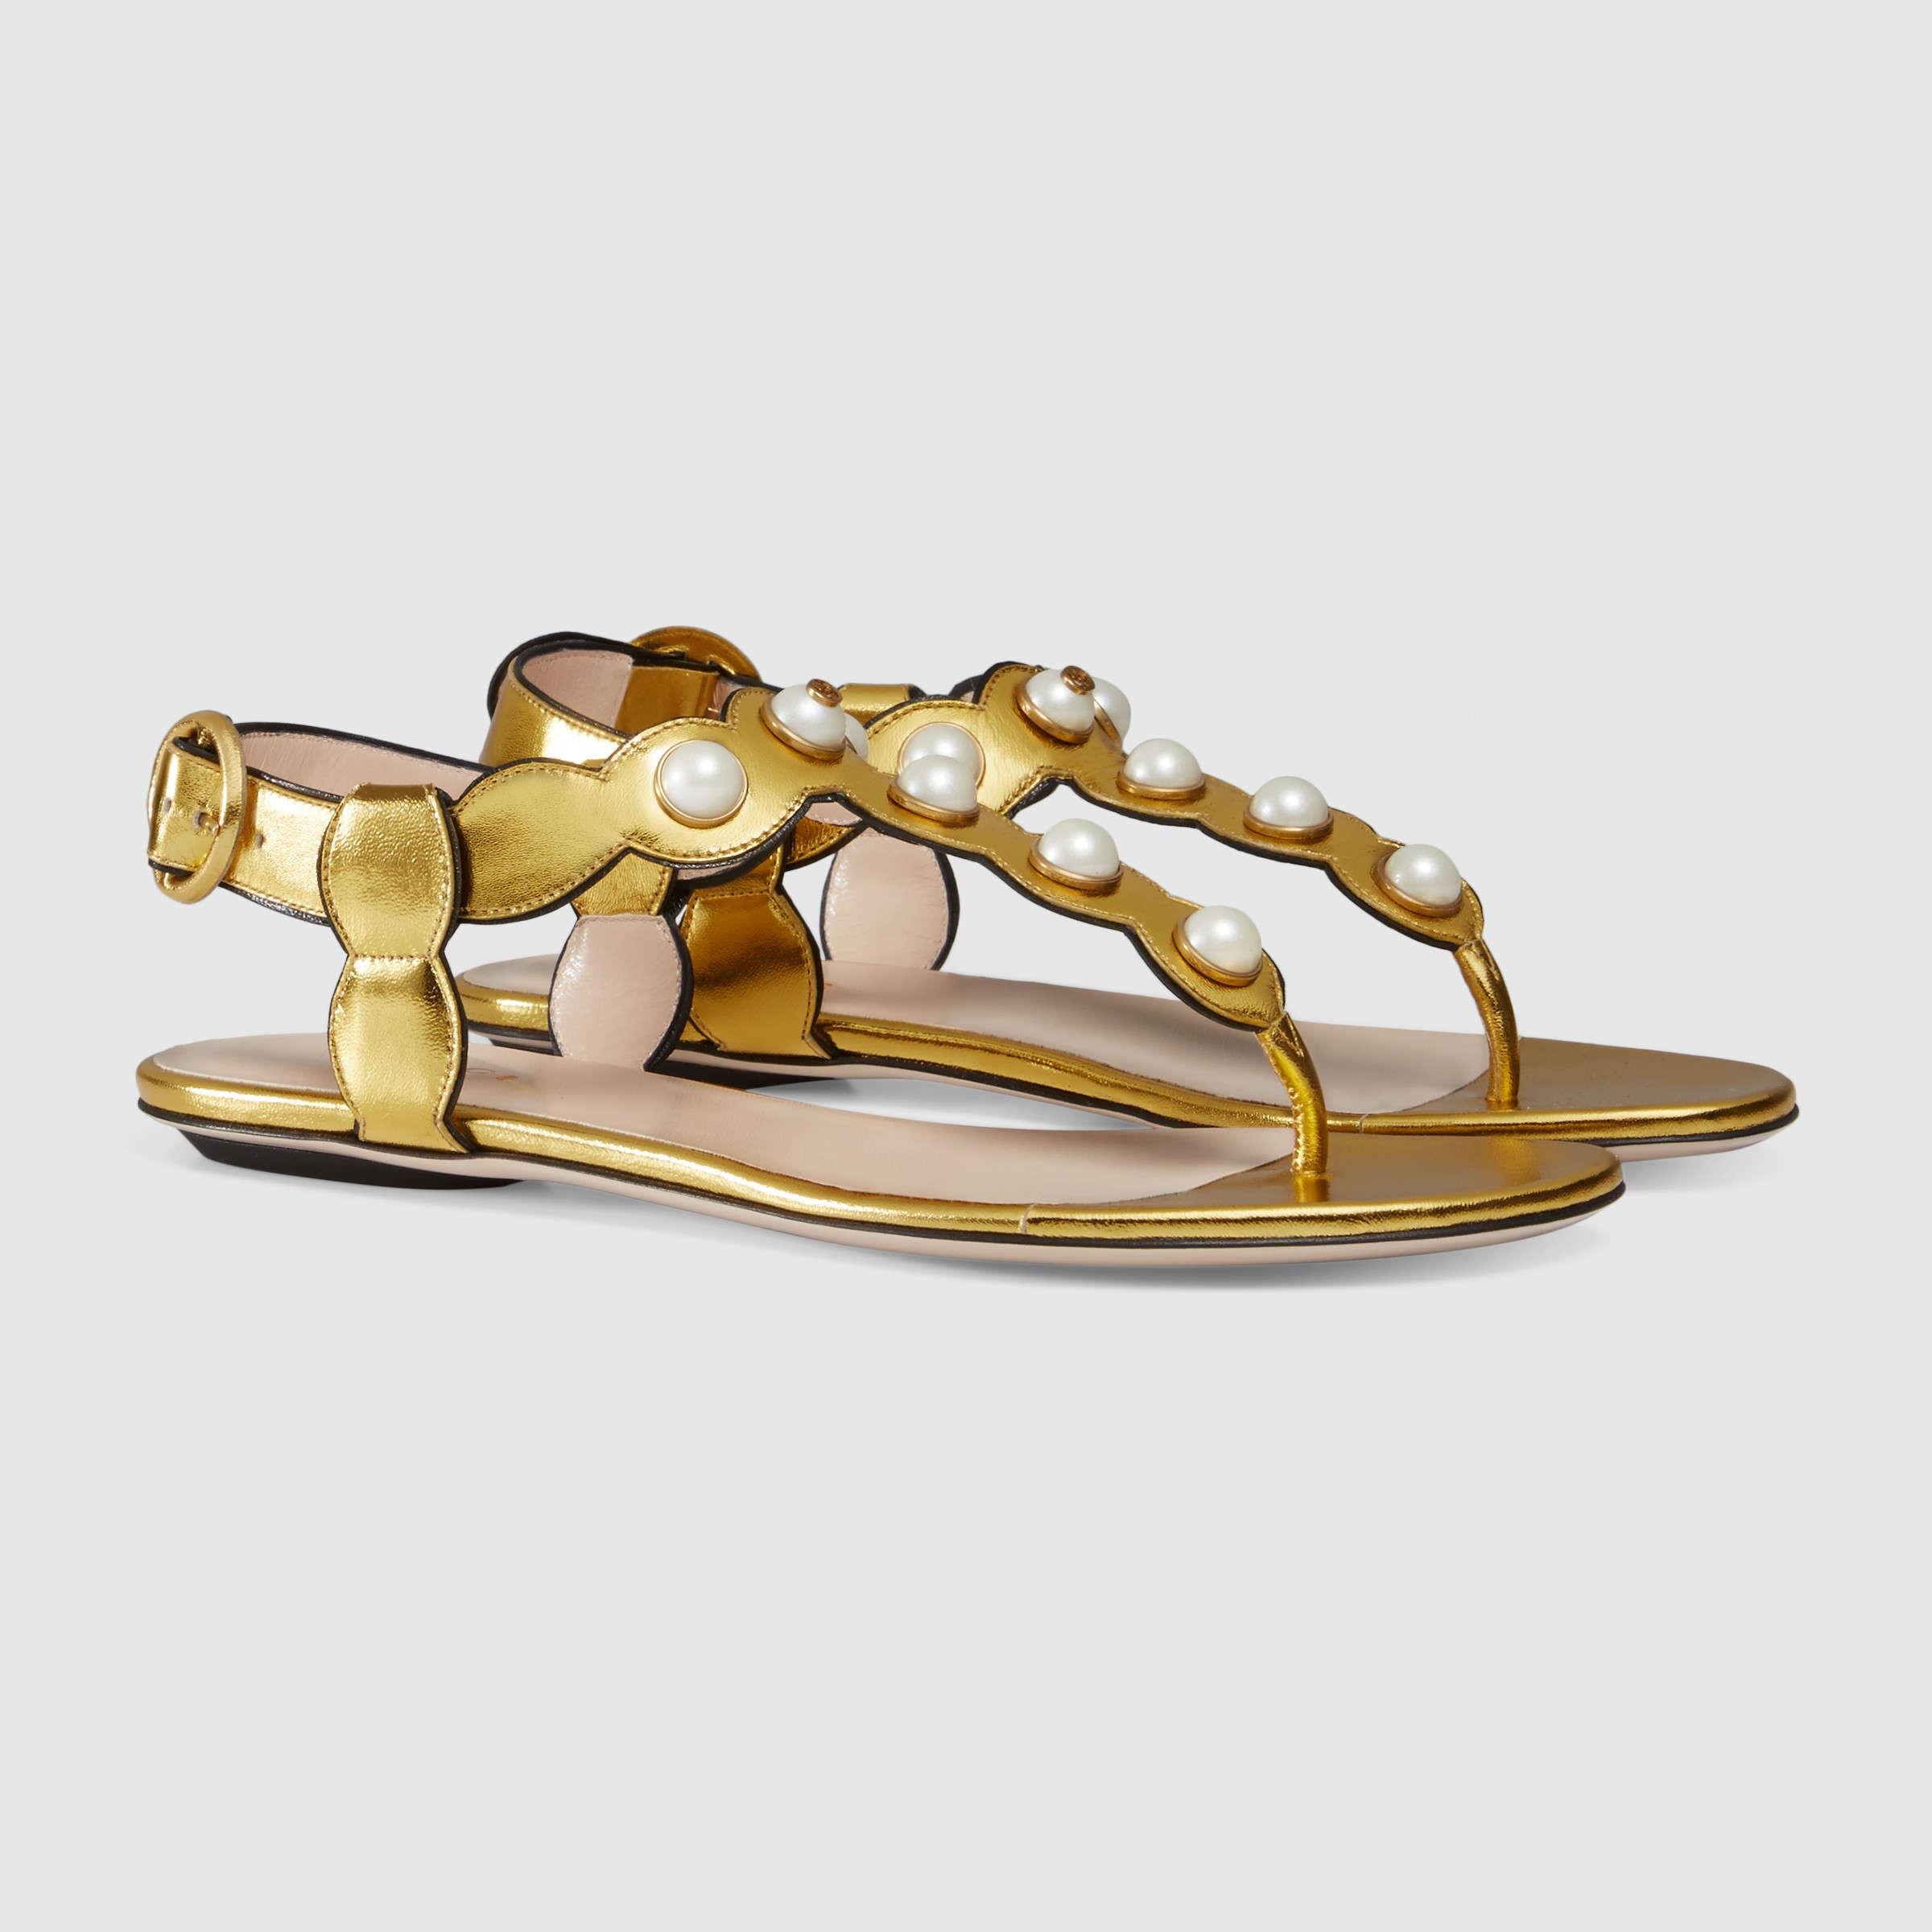 d28bf87da8901c Lyst - Gucci Embellished Metallic-Leather Sandals in Metallic